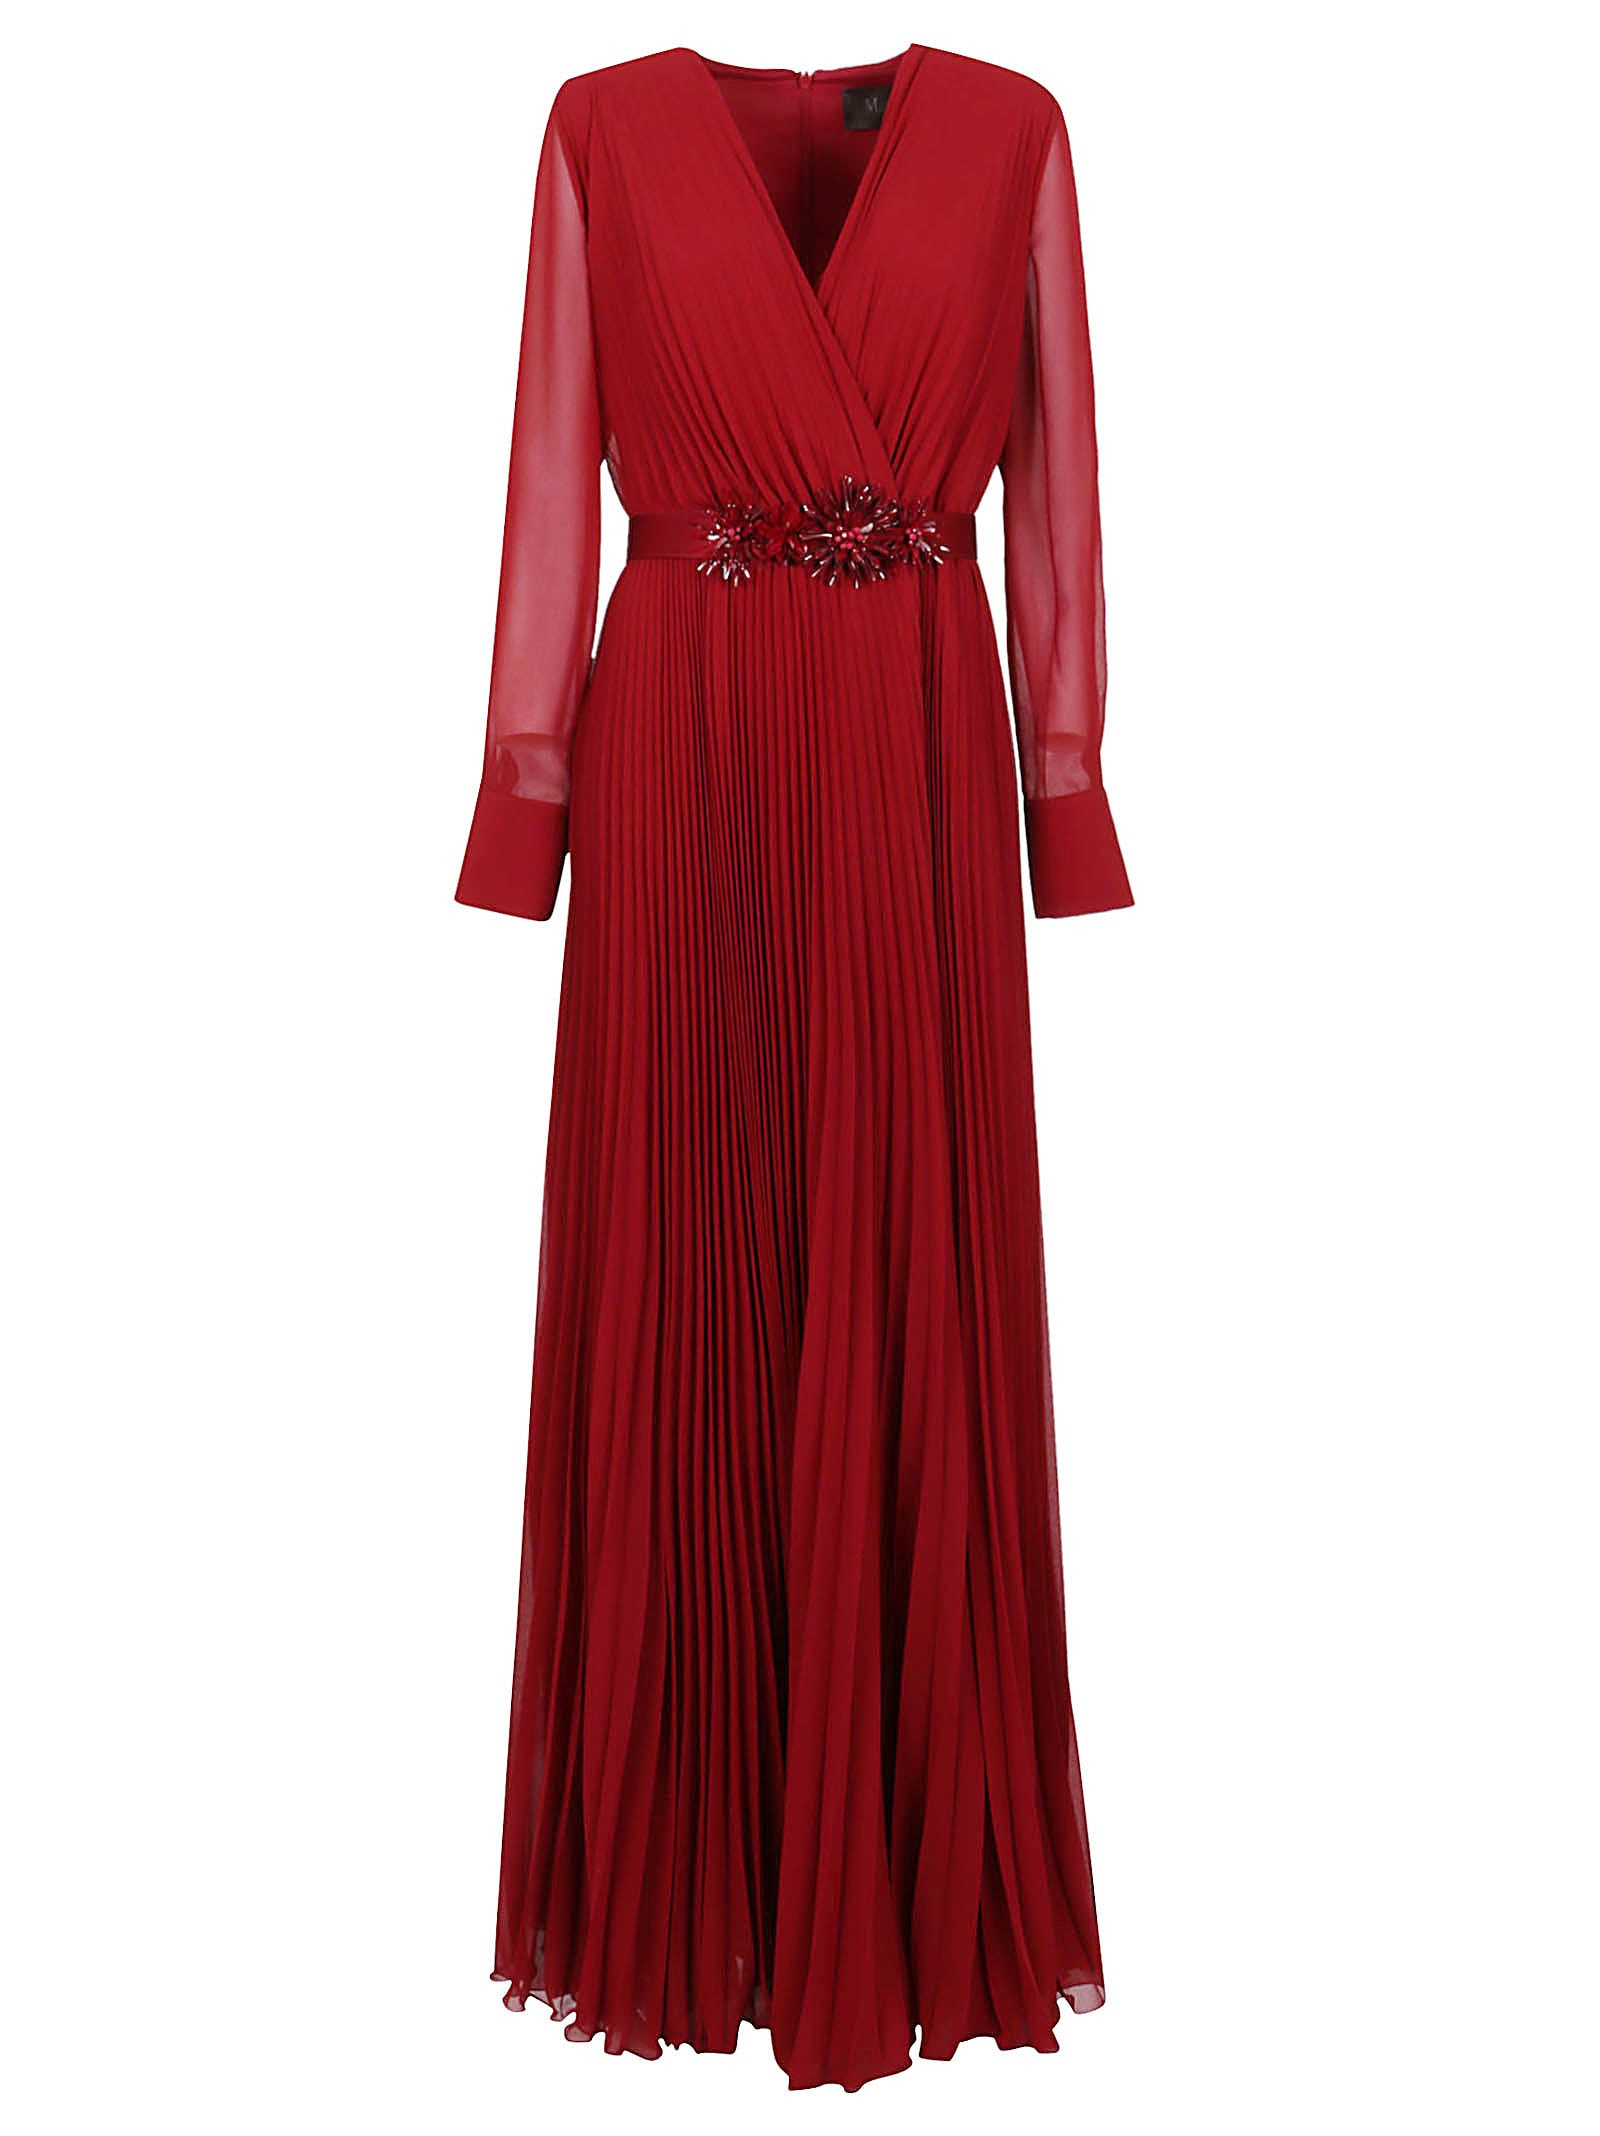 Red Technical Fabric Dress